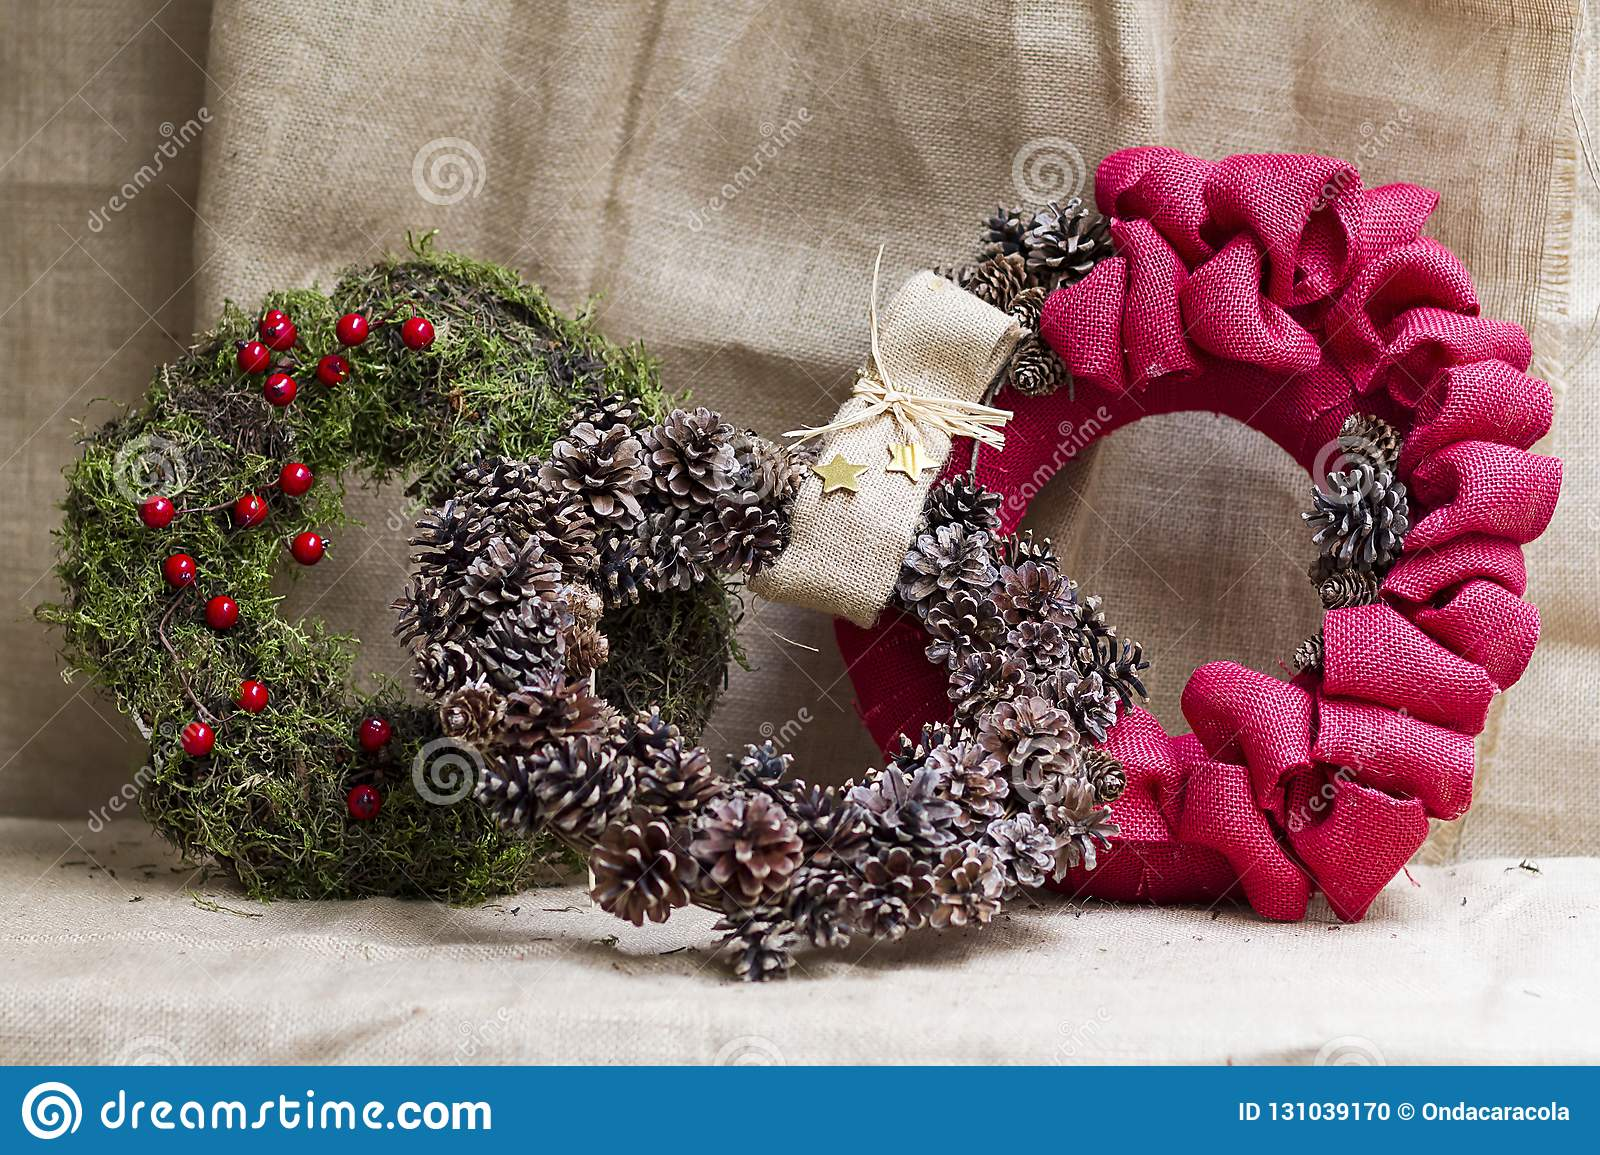 Crown Christmas Ornaments.Christmas Ornaments With Natural Plants Stock Photo Image